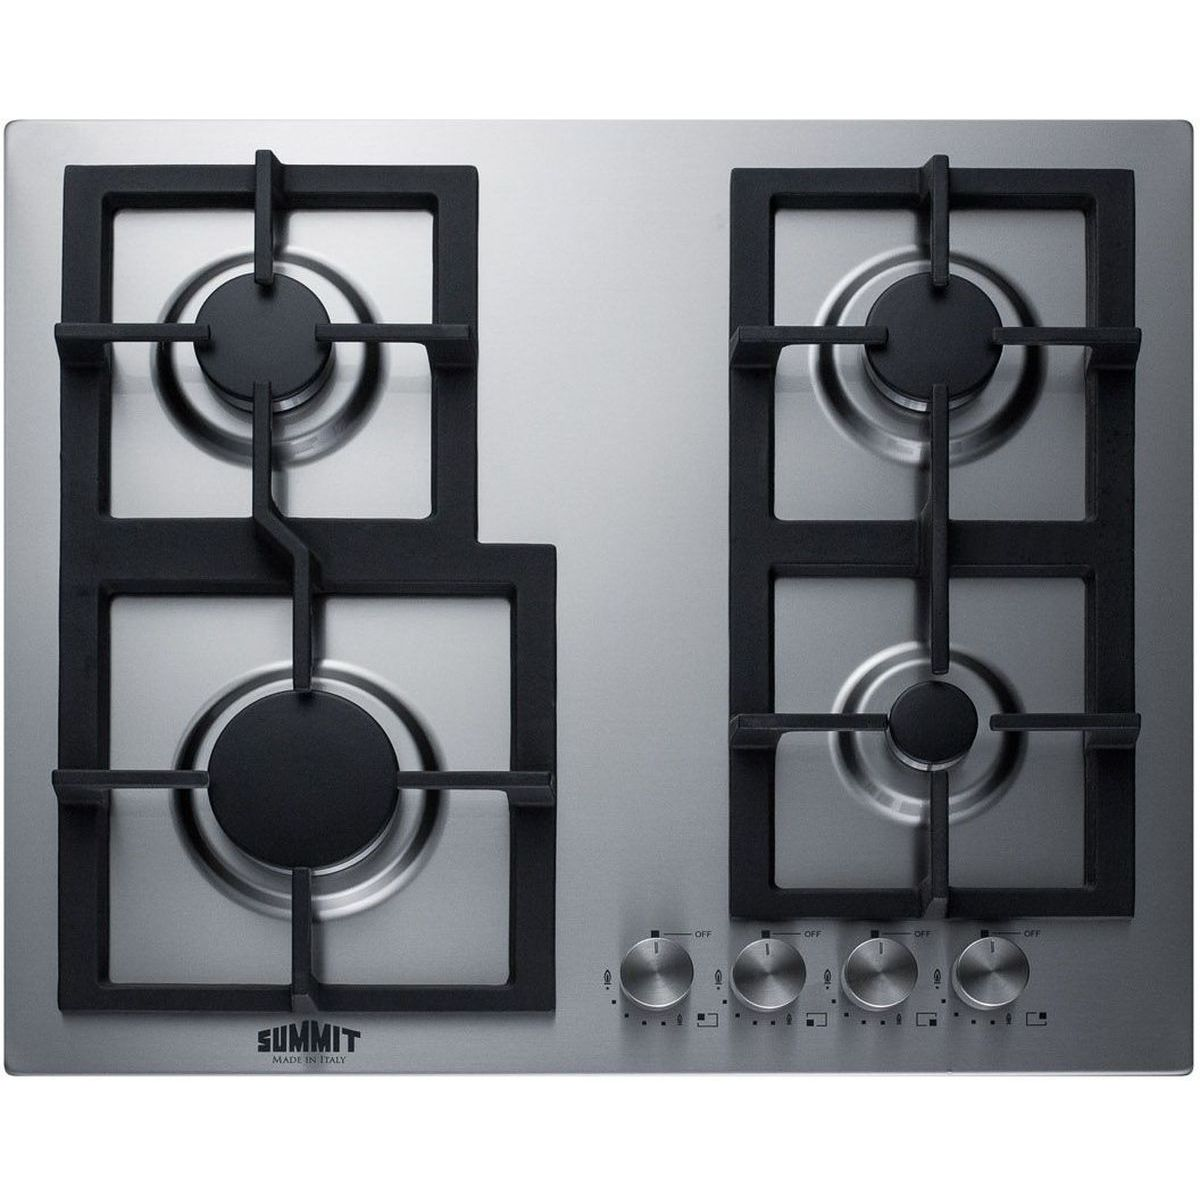 Summit GCJ4SS 24'' 4-Burner Gas Cooktop In Stainless Steel